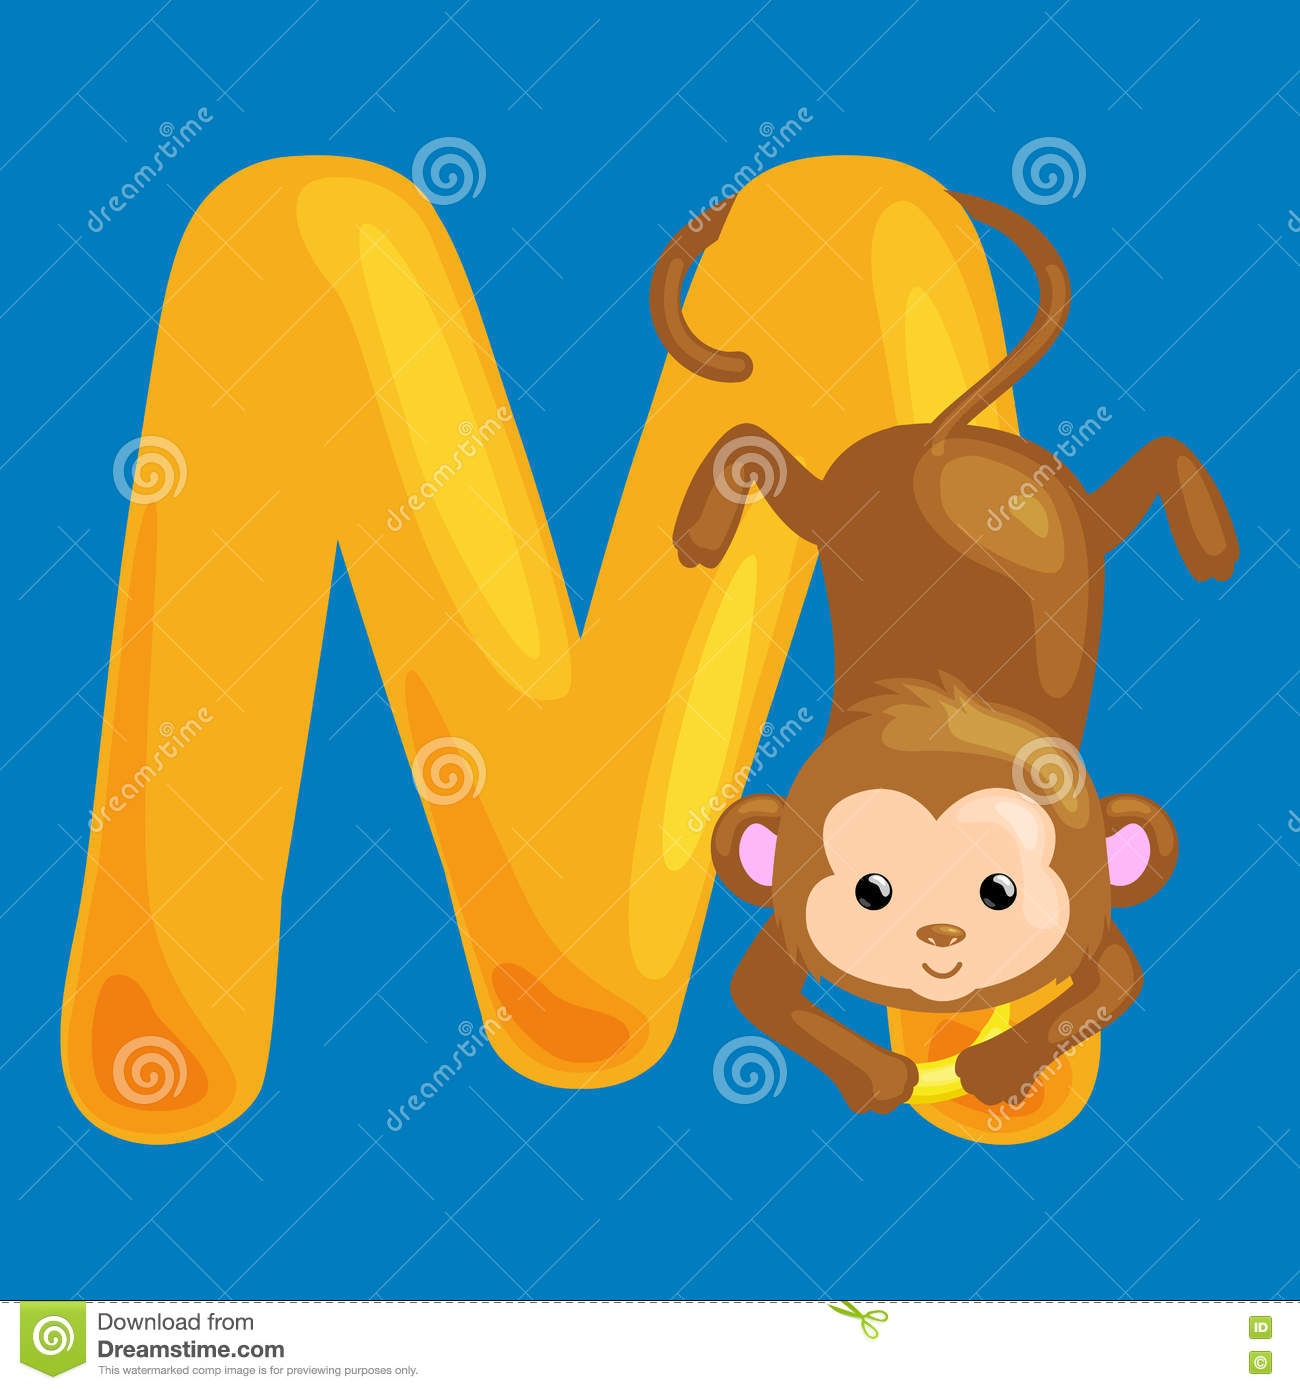 Letter M With Animal Monkey For Kids Abc Education In Preschool Stock Vector